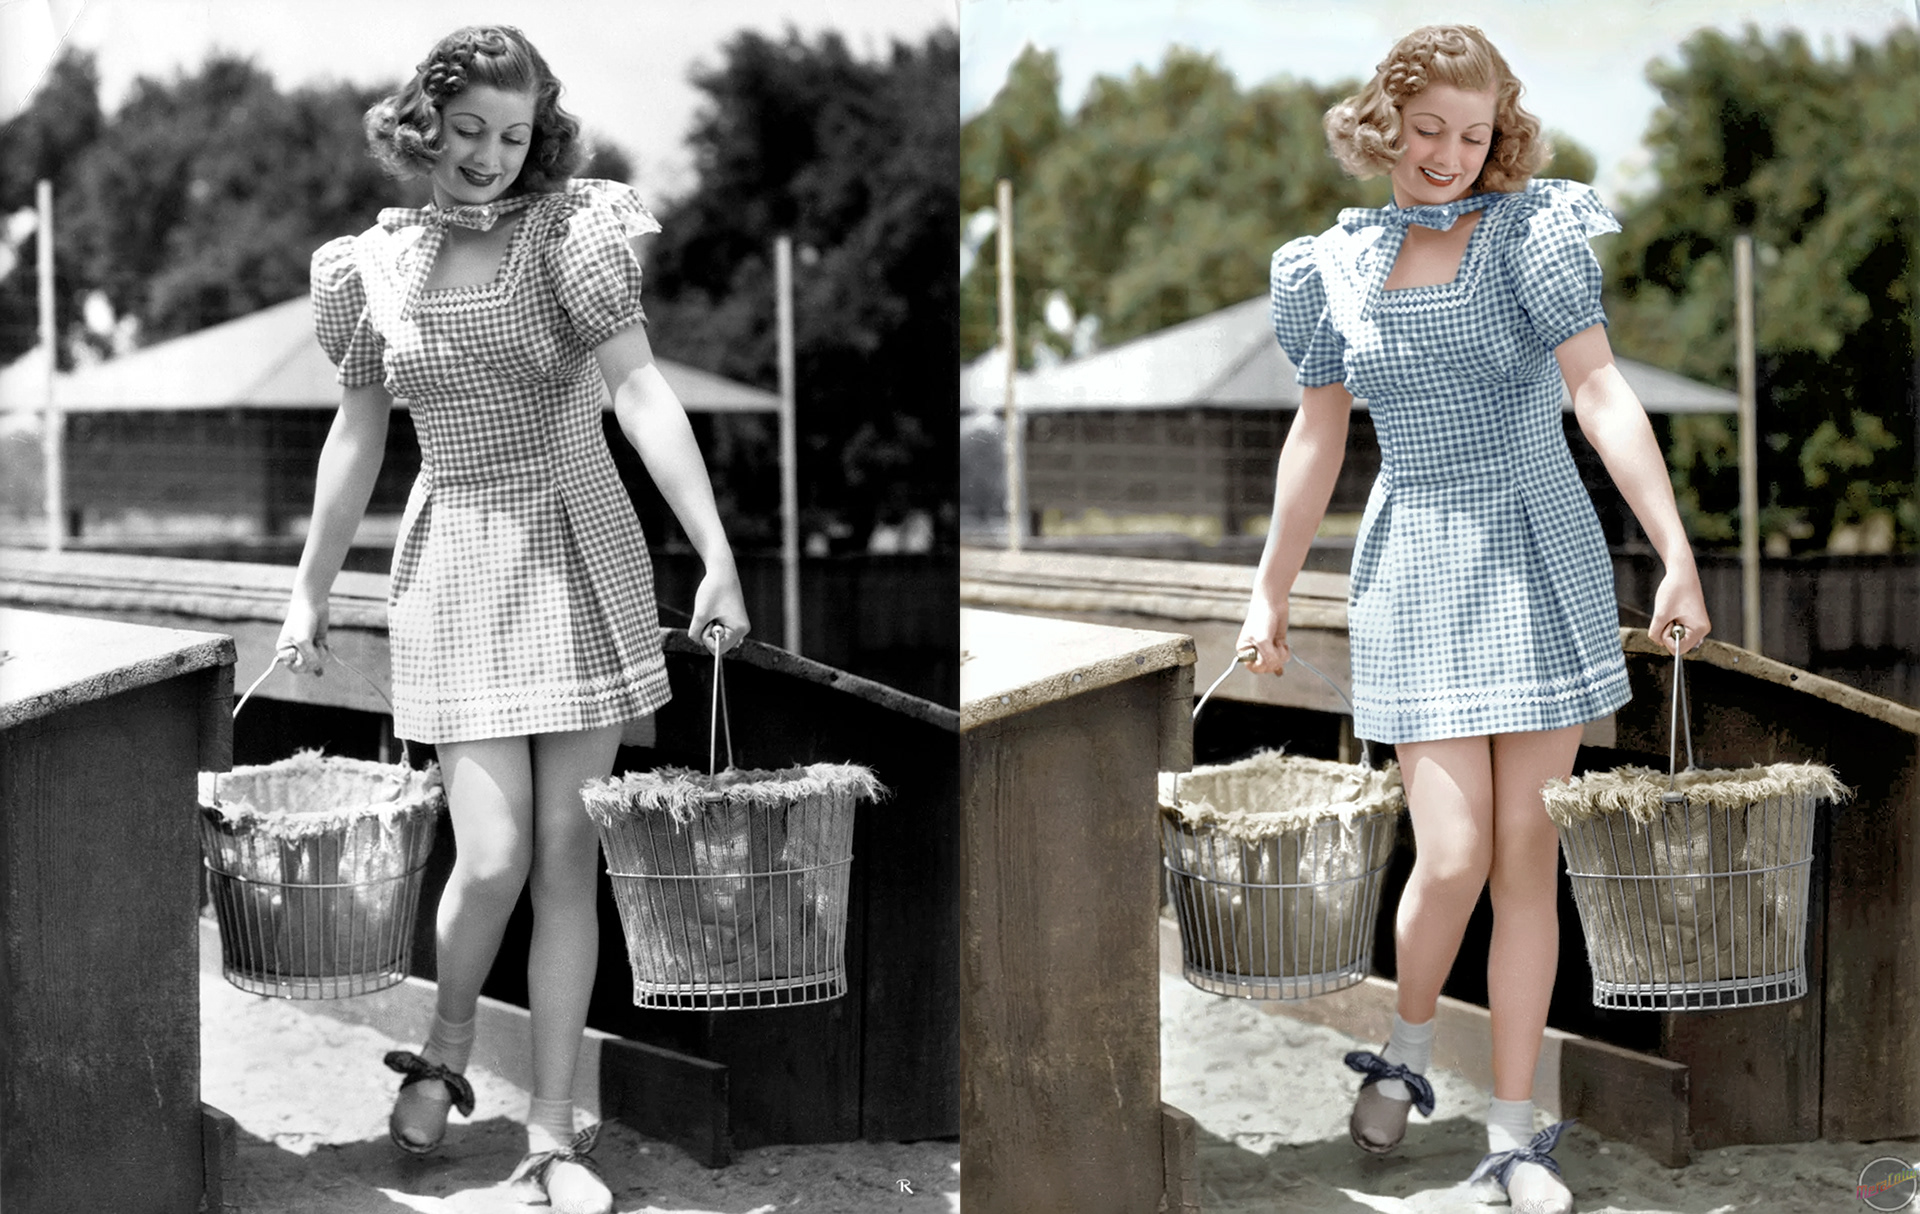 # Teeth Whitening Tucson - Equate Teeth Whitening Pictures of lucille ball when she was young